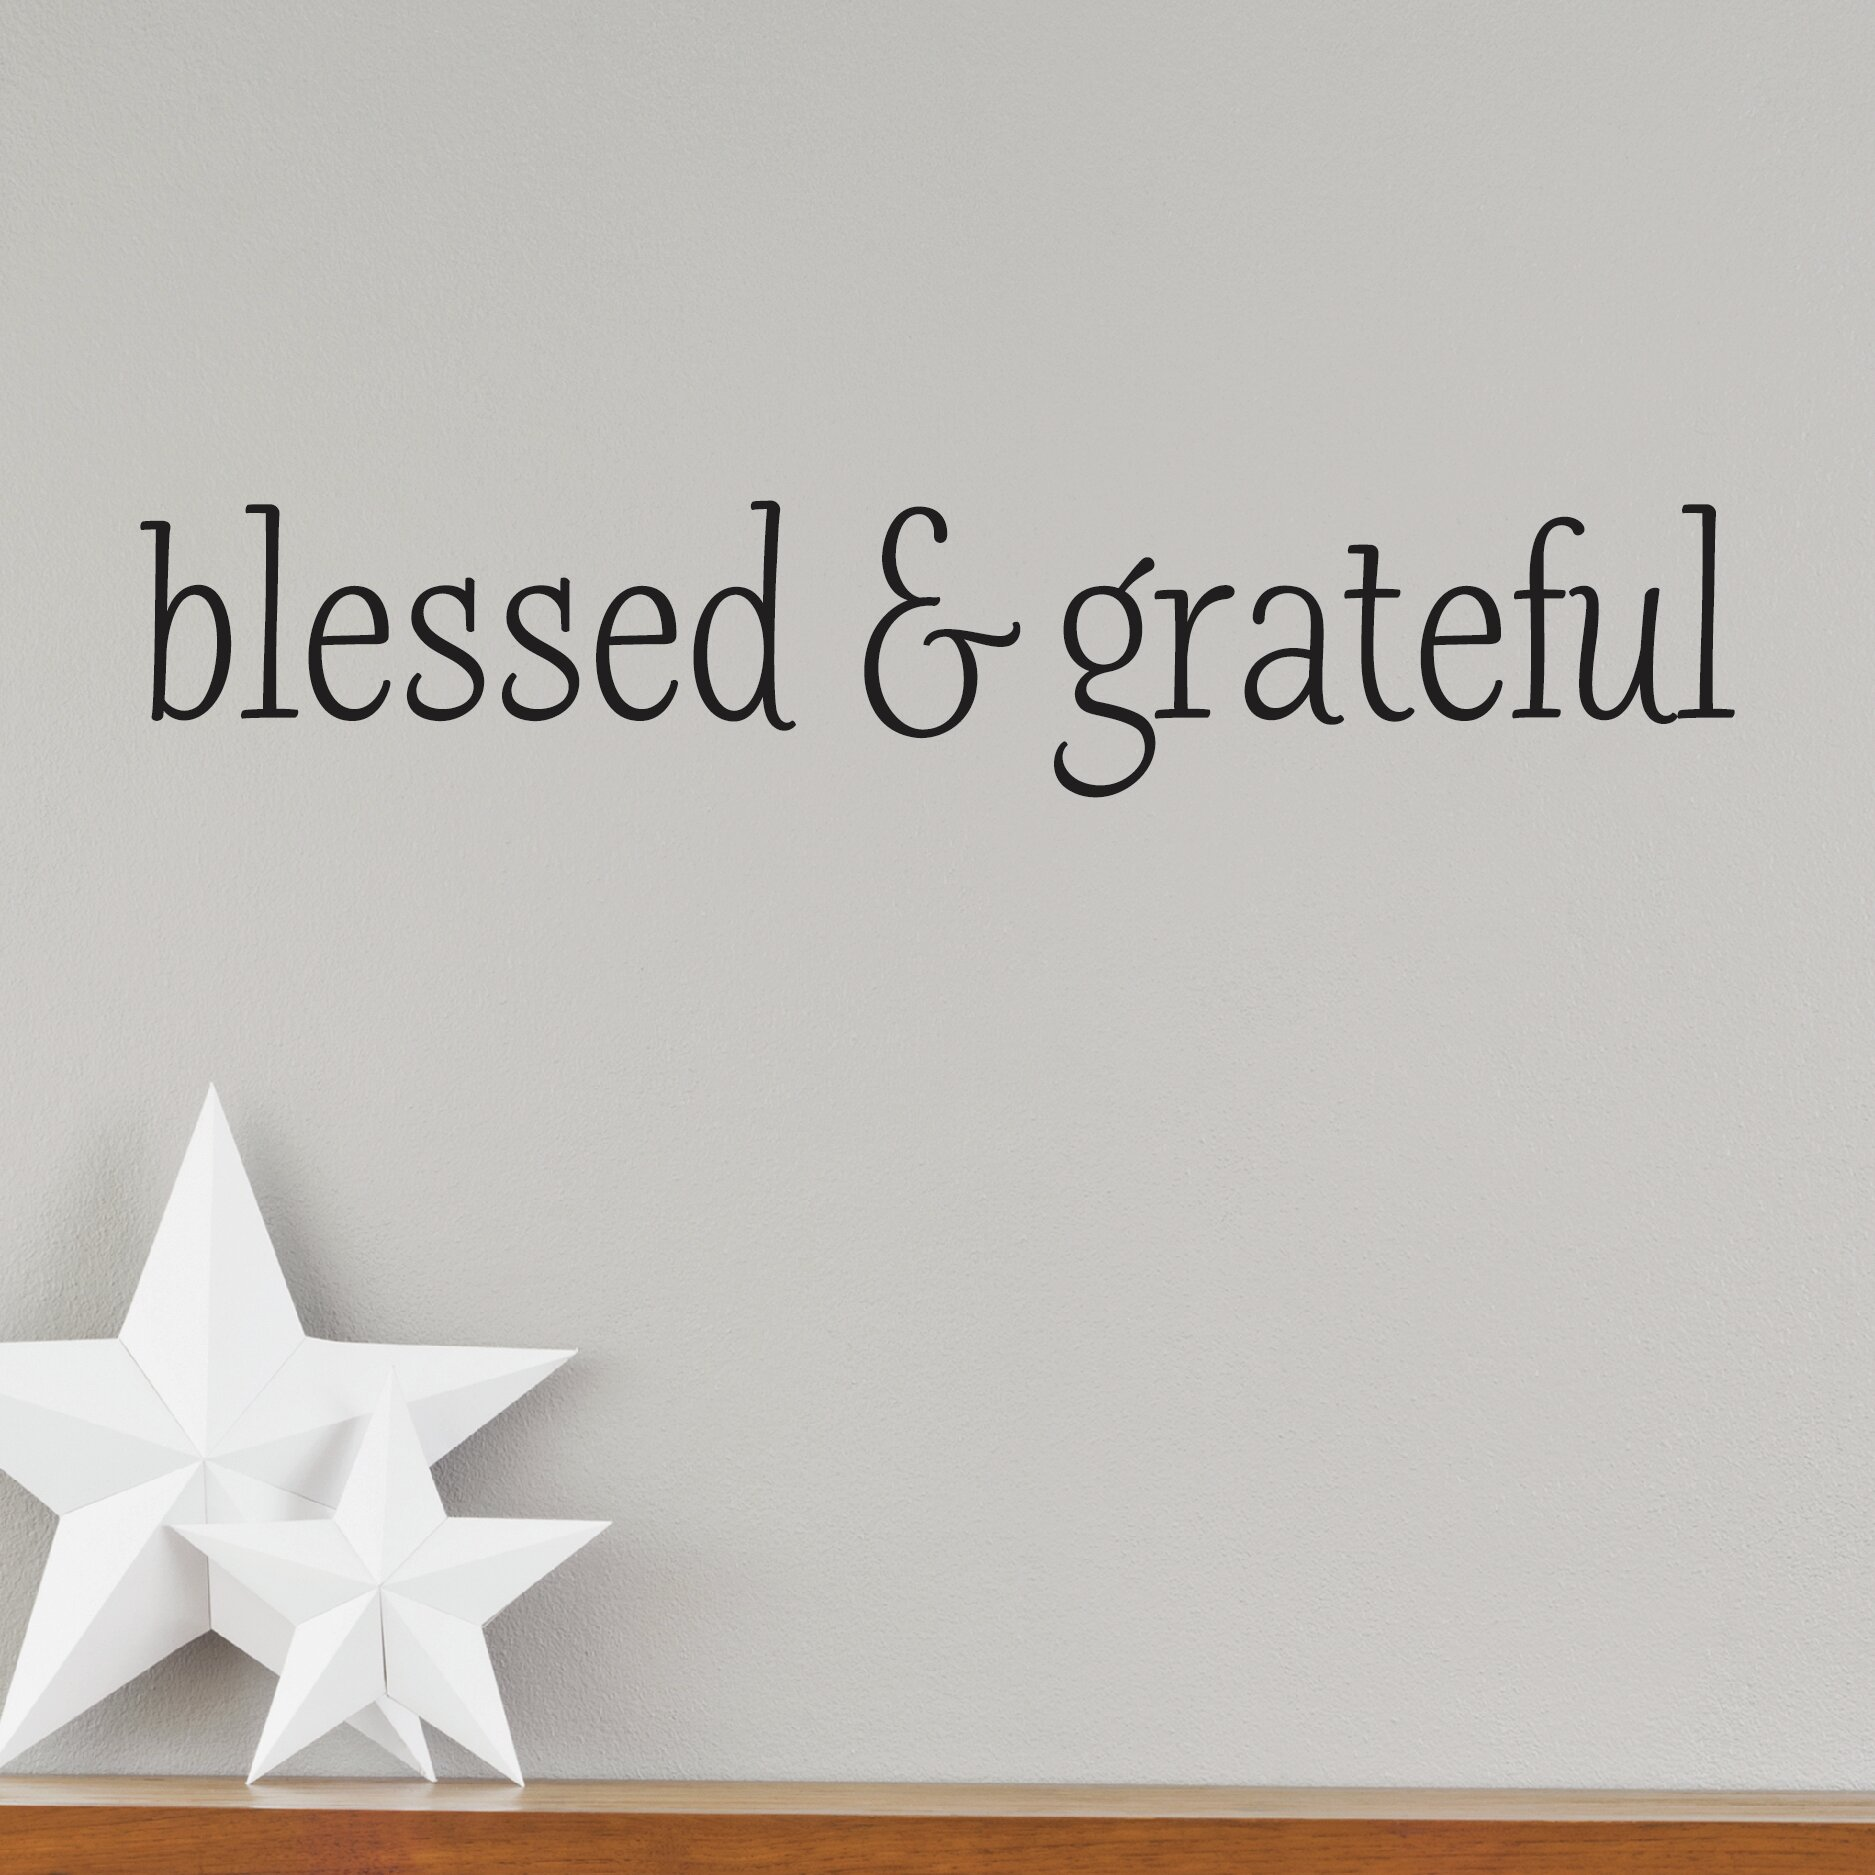 Belvedere Designs LLC Blessed and Grateful Wall Decal & Reviews